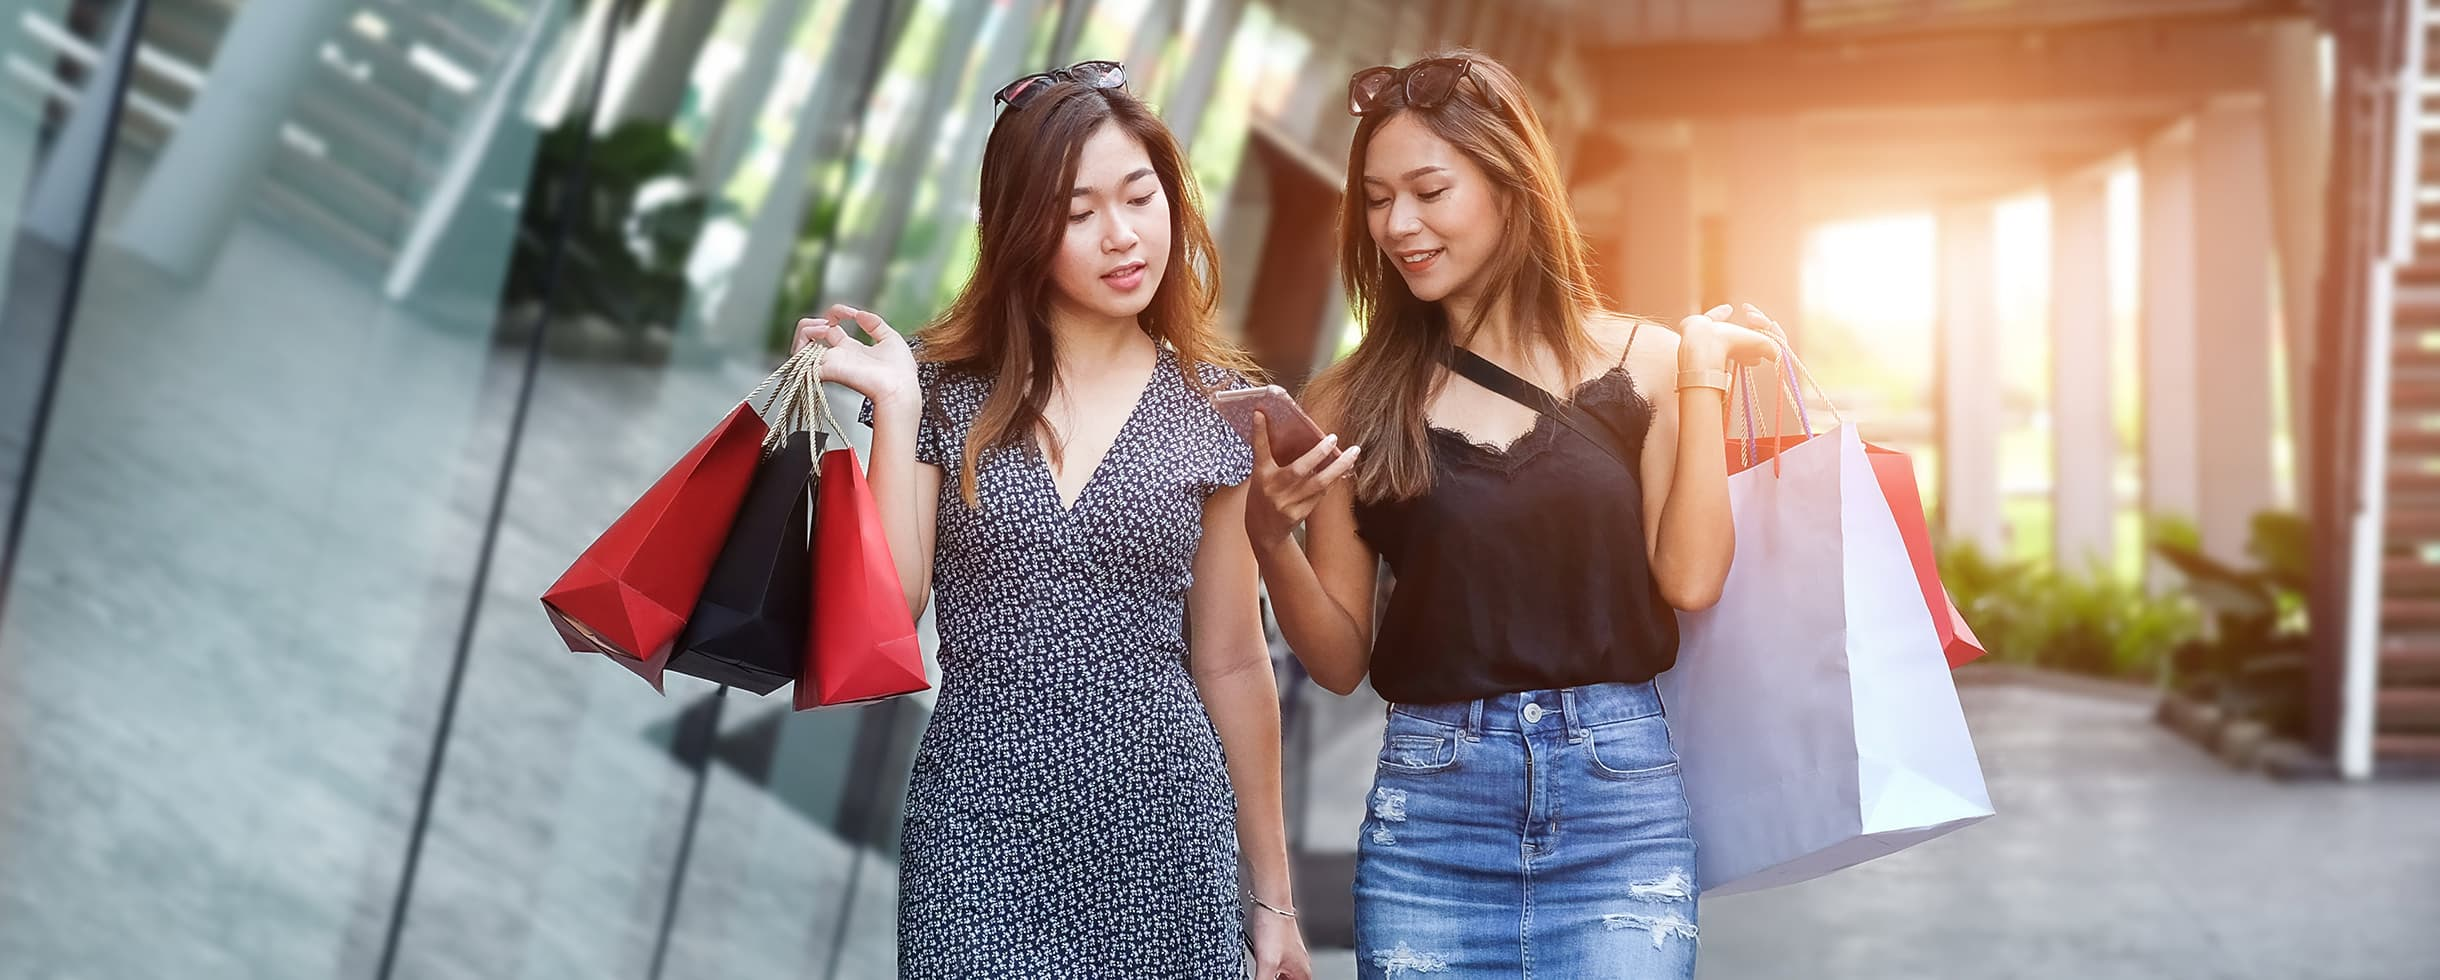 girlfriends shopping together